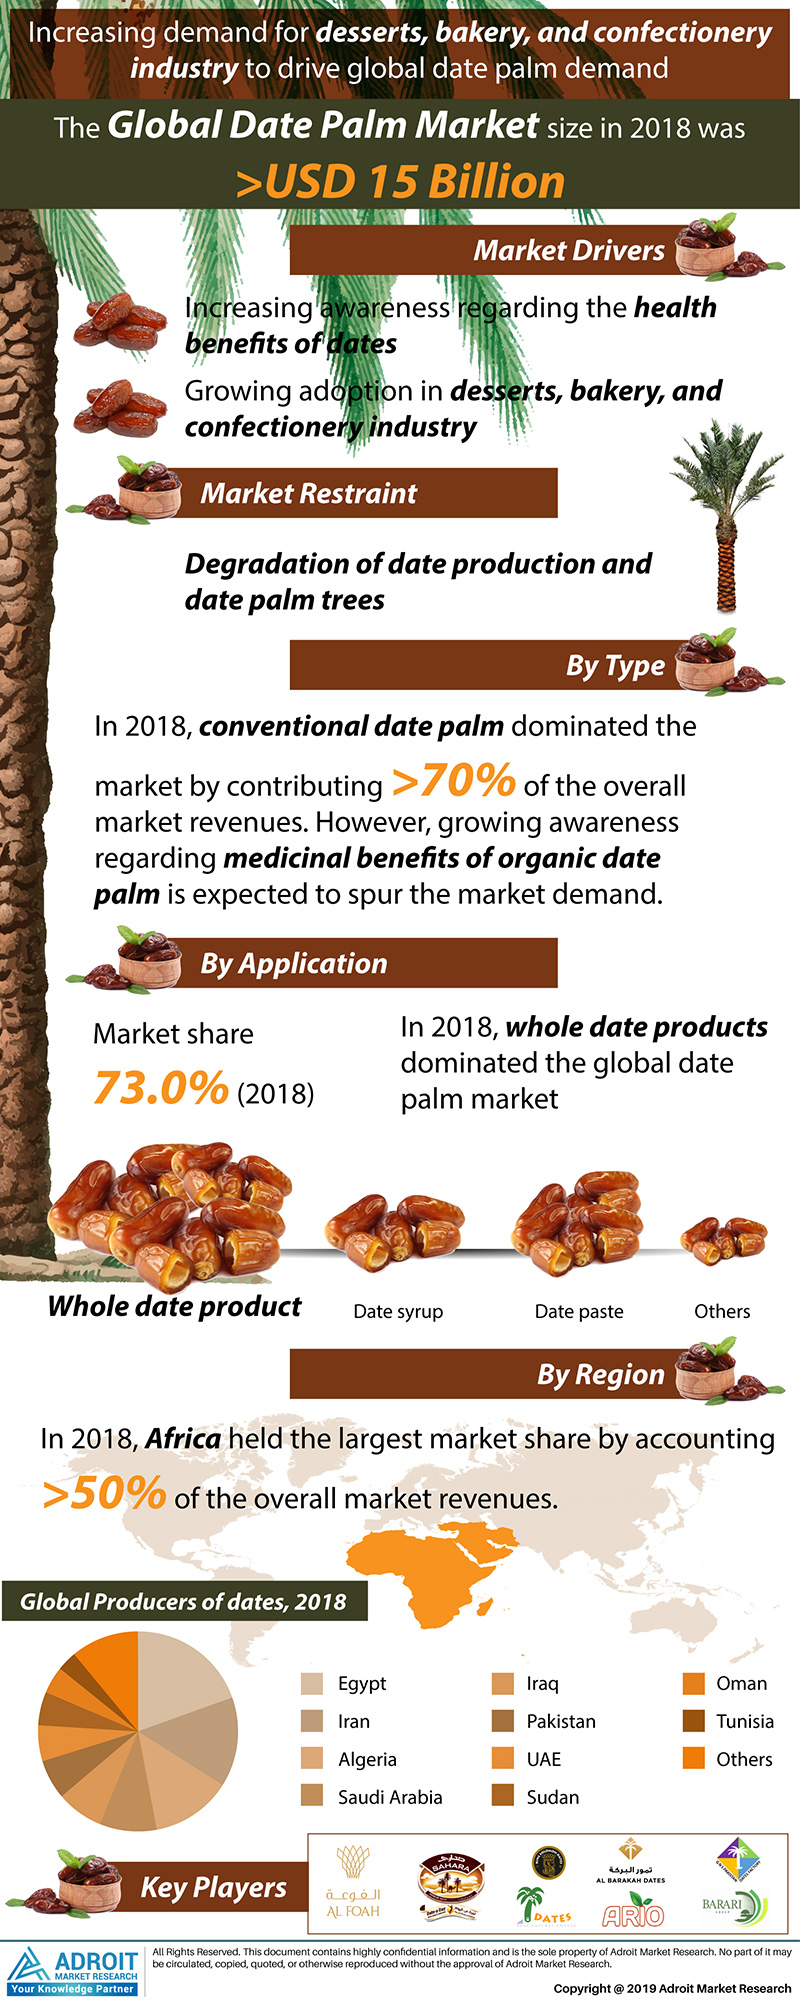 Global Date Palm Market Size 2017 By Type, Application, Region and Forecast 2019 to 2025